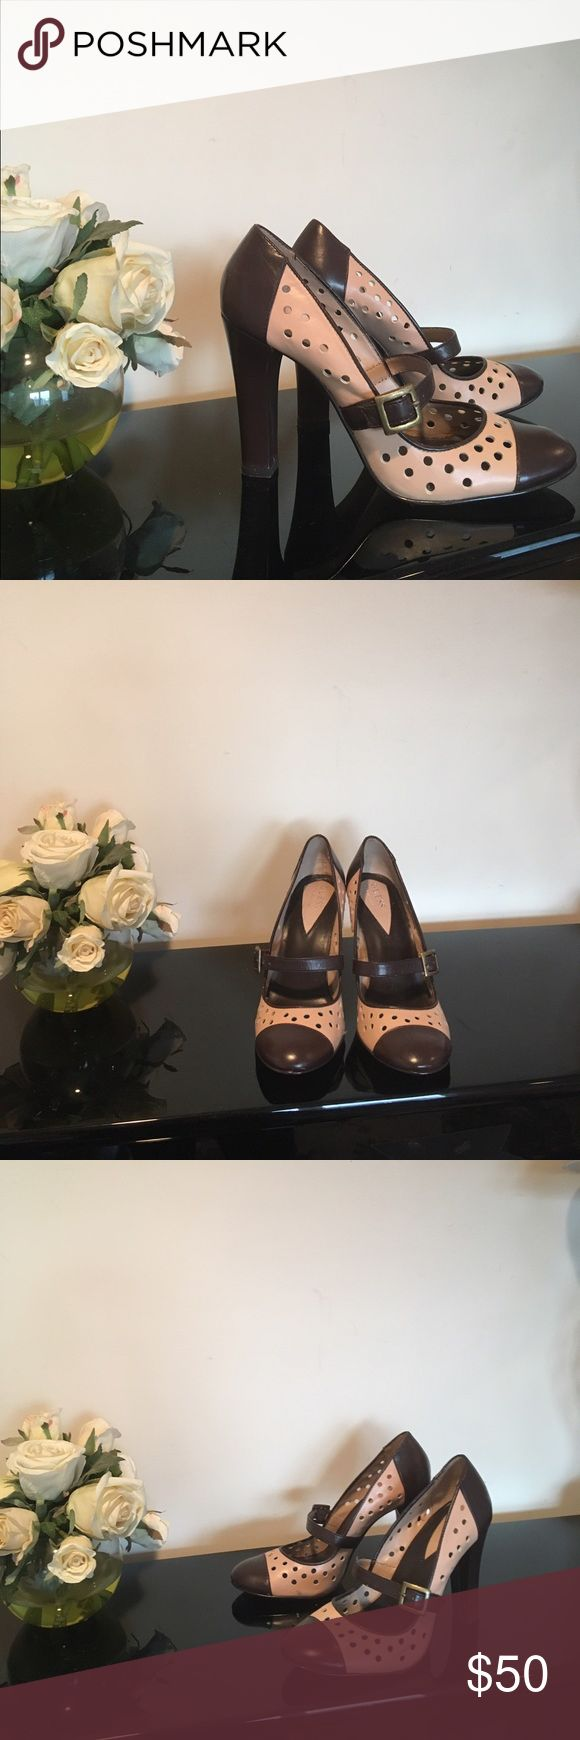 """Guess by Marciano leather pumps Guess by Marciano women's leather pumps. Used in good condition. Brown leather with cream. Size 6.5, approx 4"""" heel. No box. Guess by Marciano Shoes Heels"""